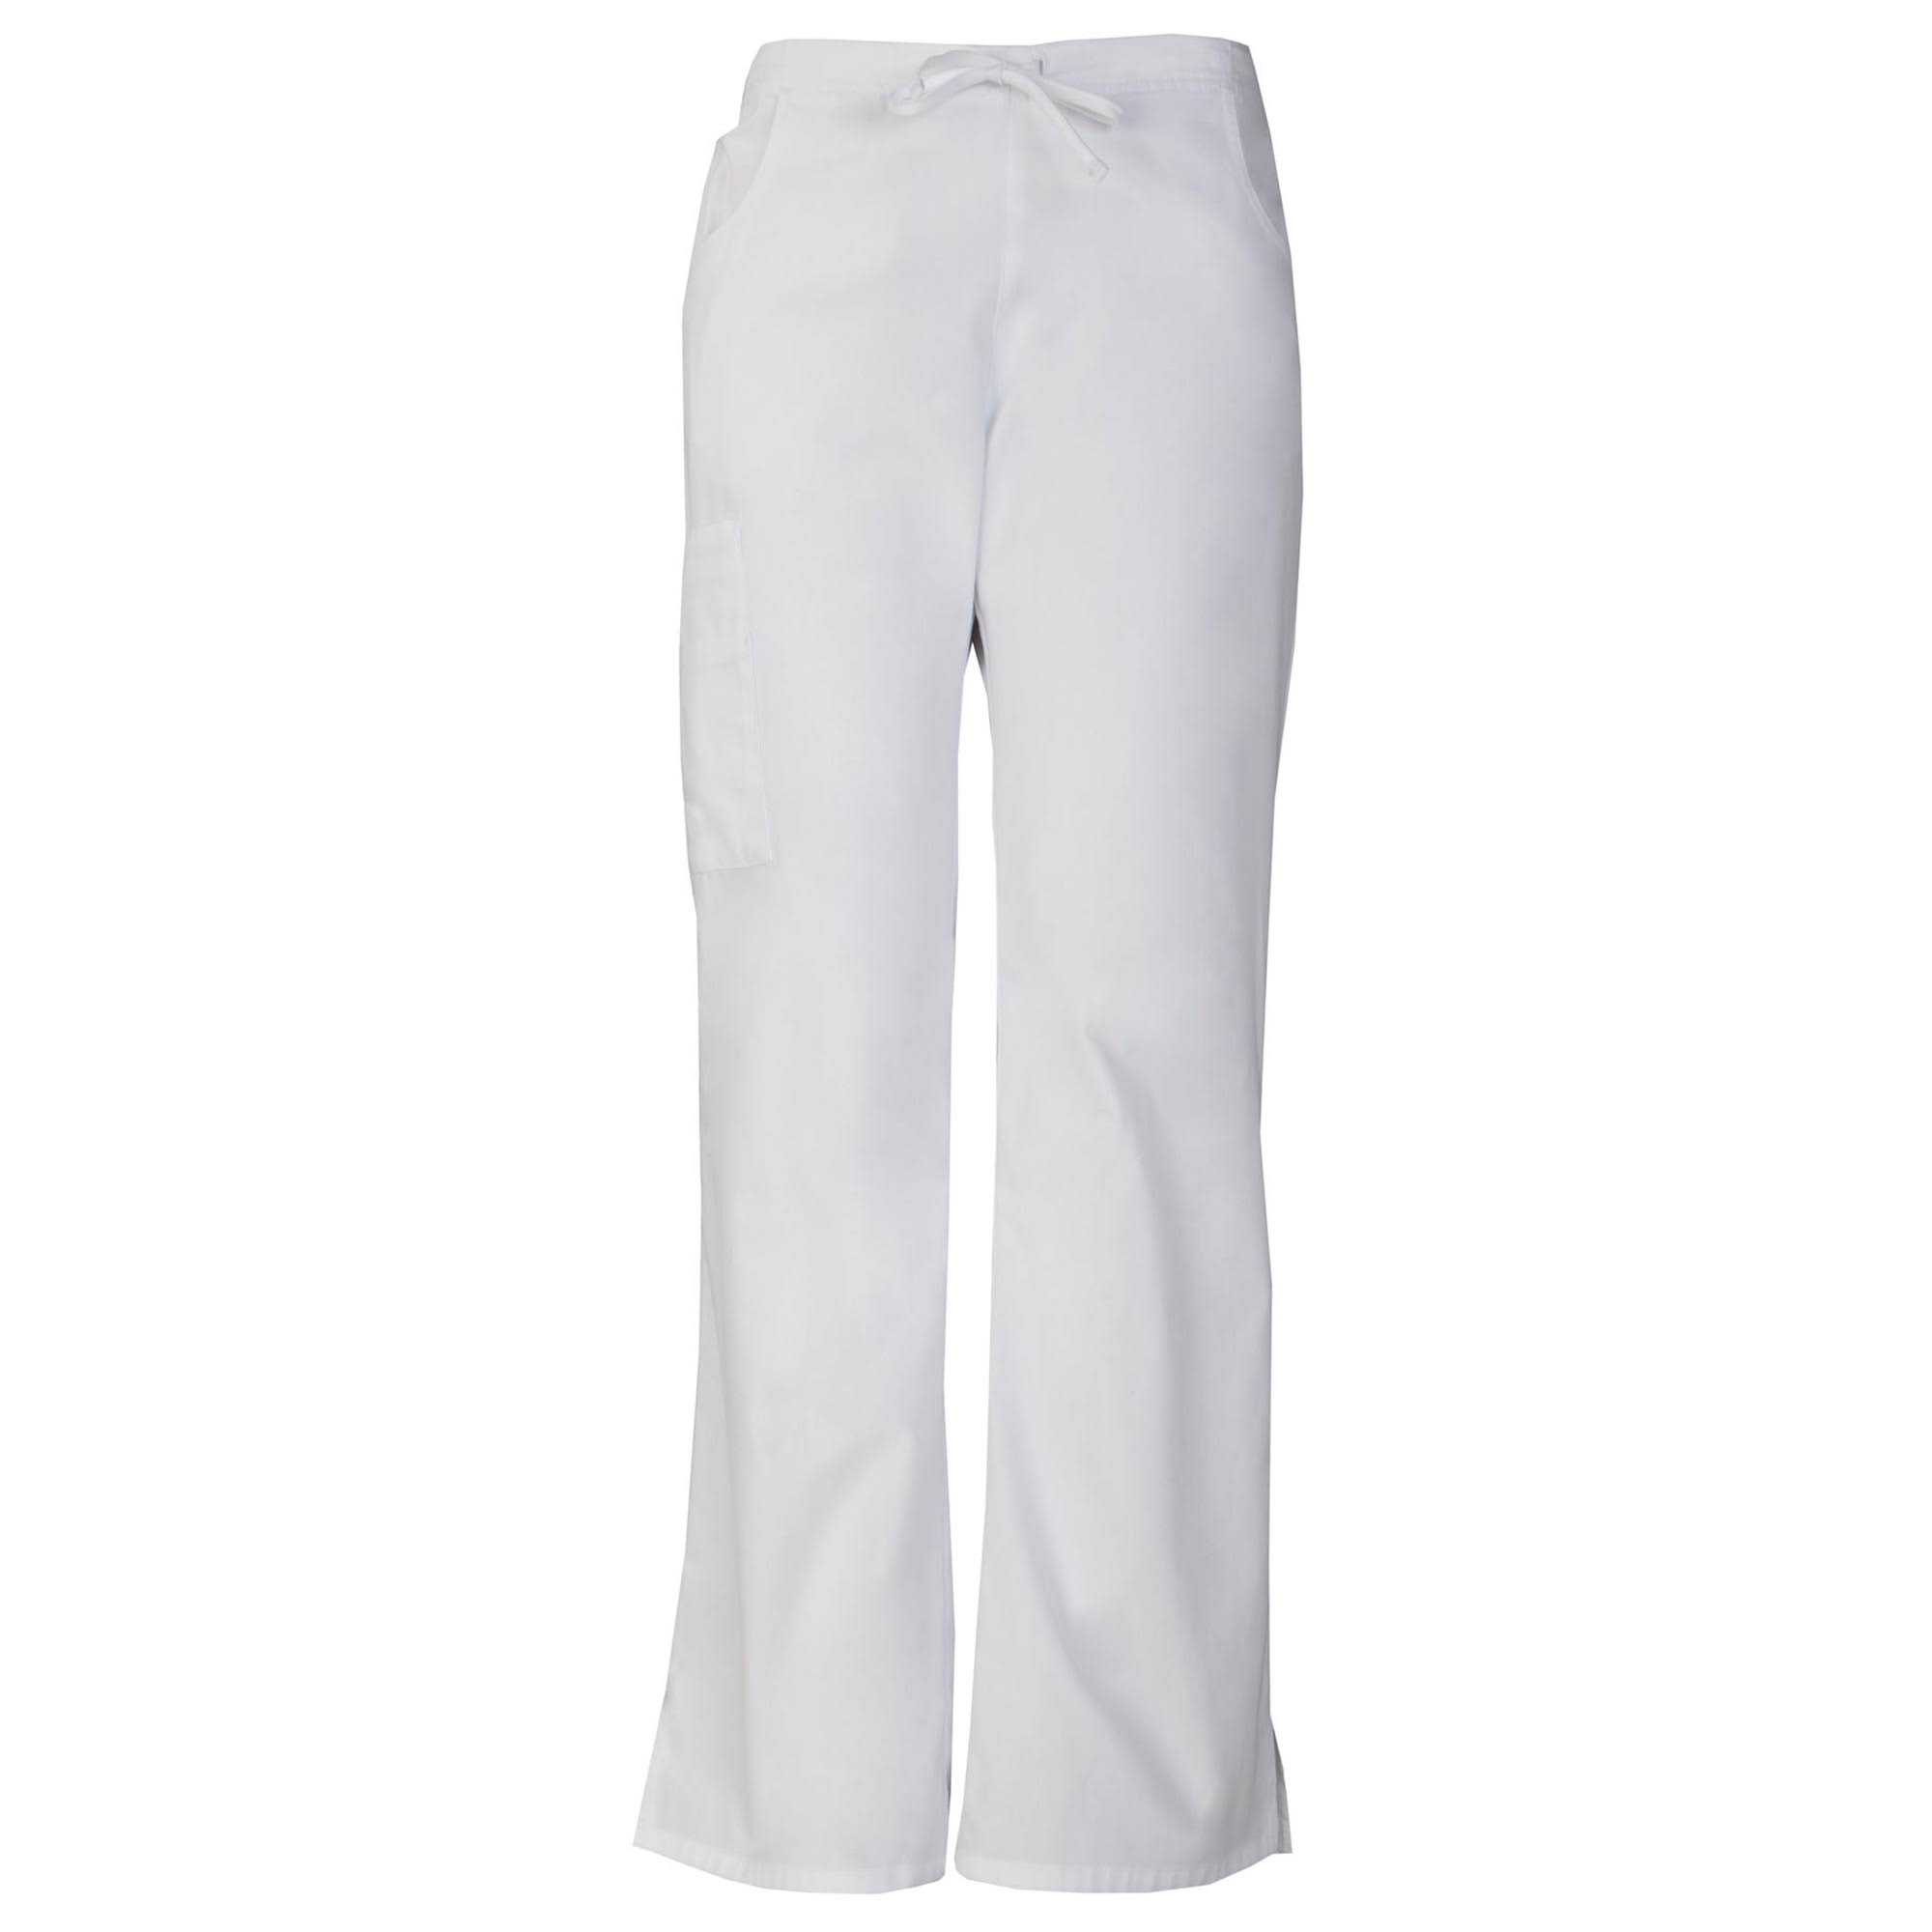 Dickies EDS Signature Women's Drawstring Cargo Scrub Pants-86206 (White - Small)